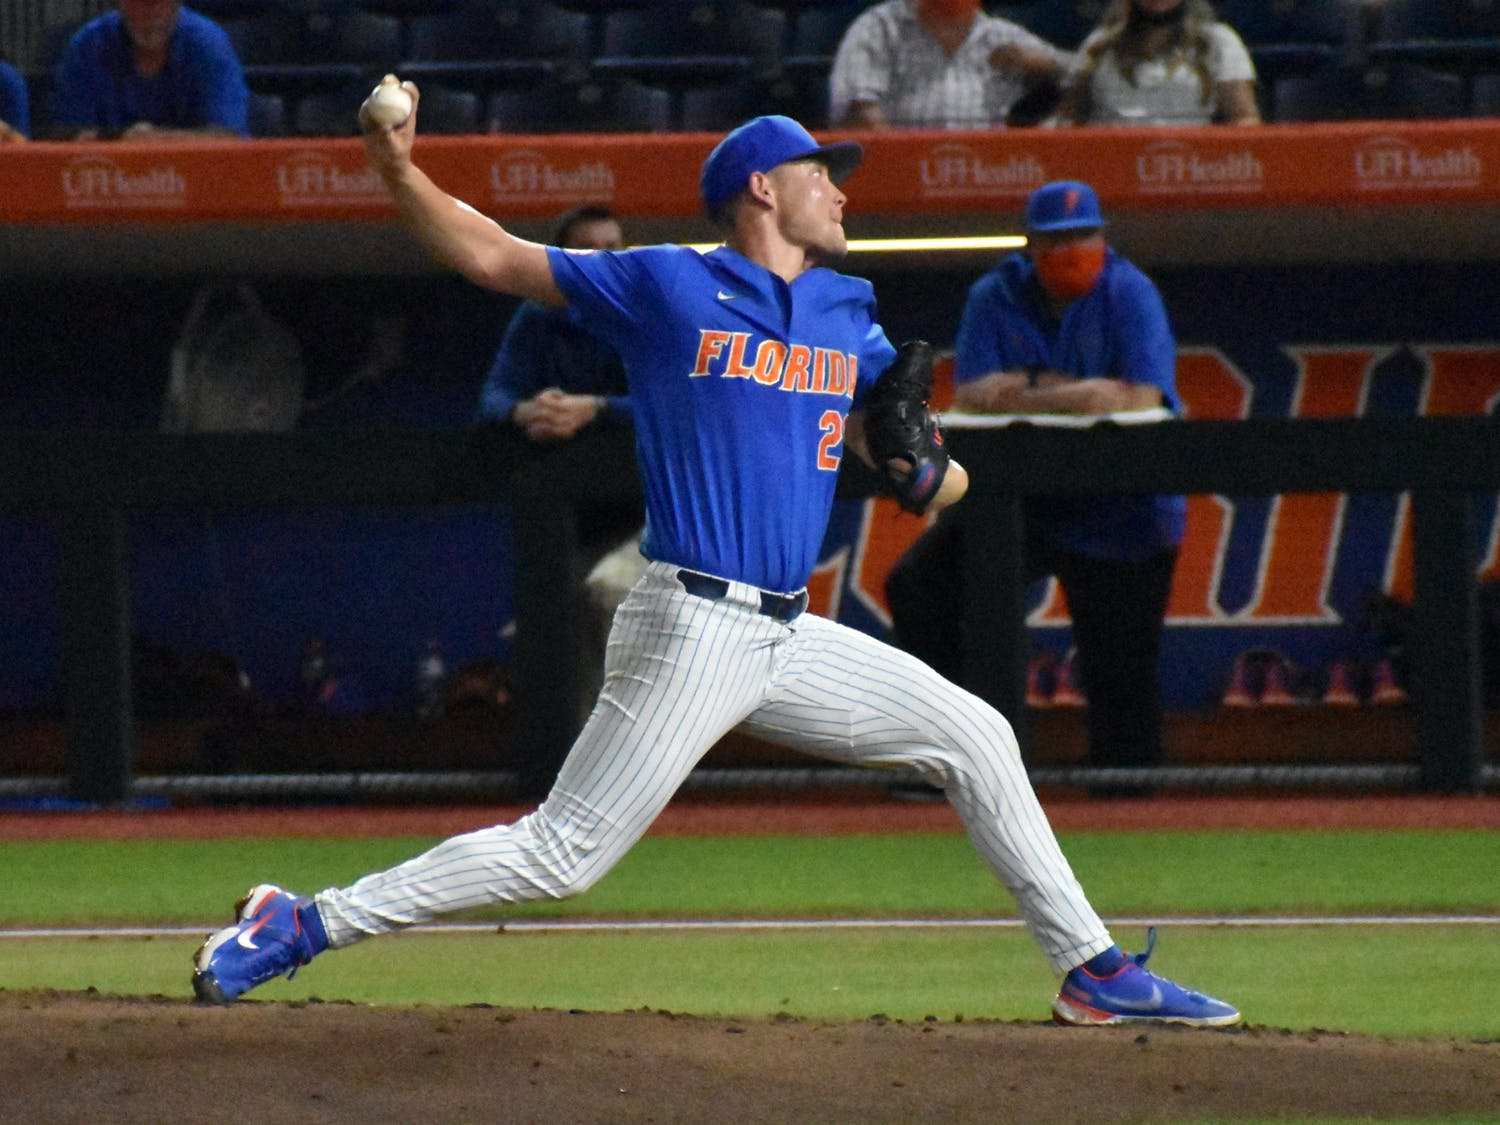 The fourth-year pitcher put on a show Saturday with his first shutout of the year.